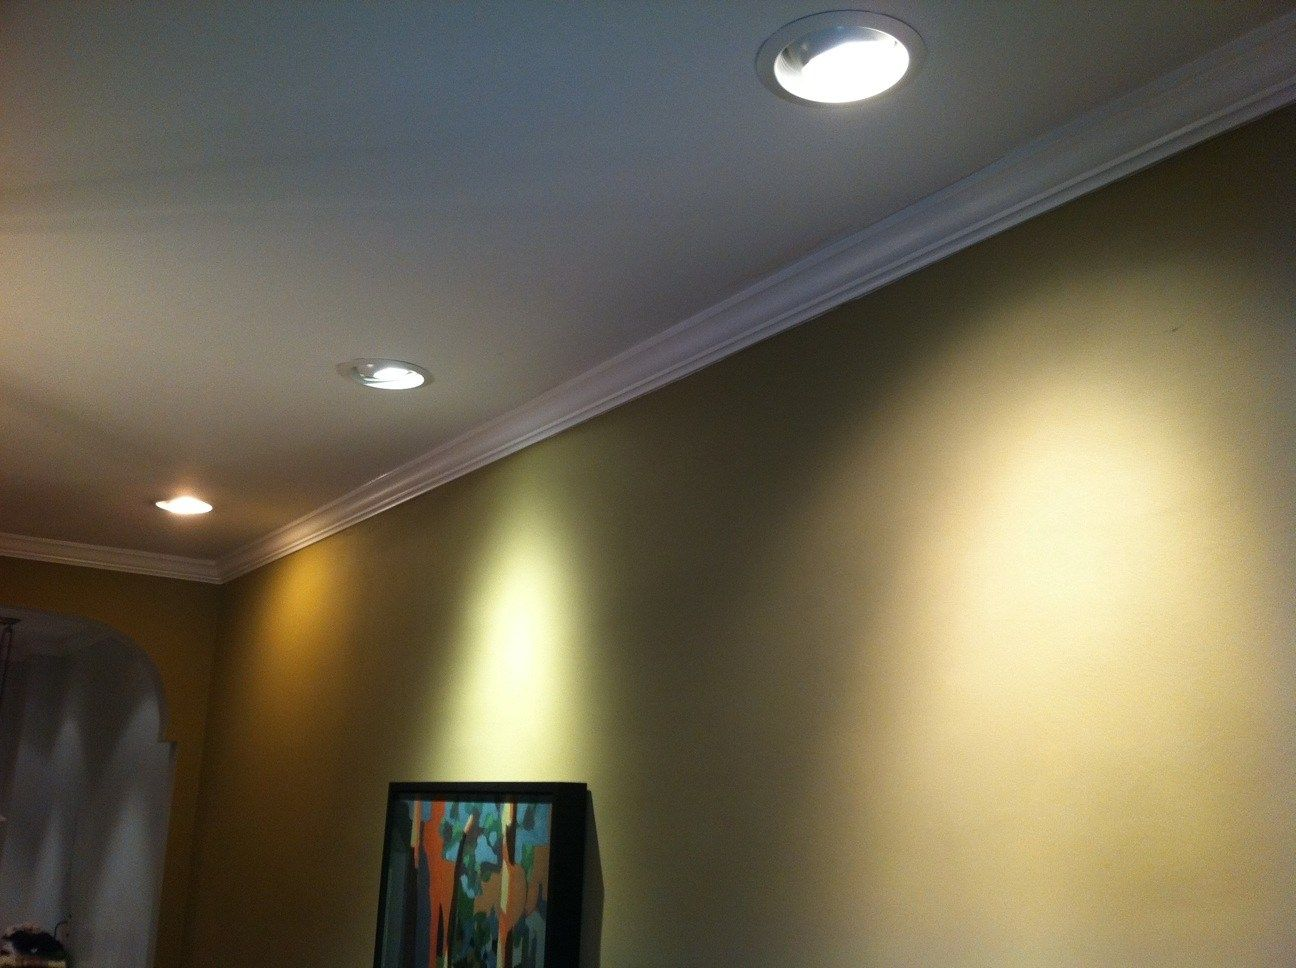 Recessed Wall Wash Light Fixture Wall Wash Lighting Recessed